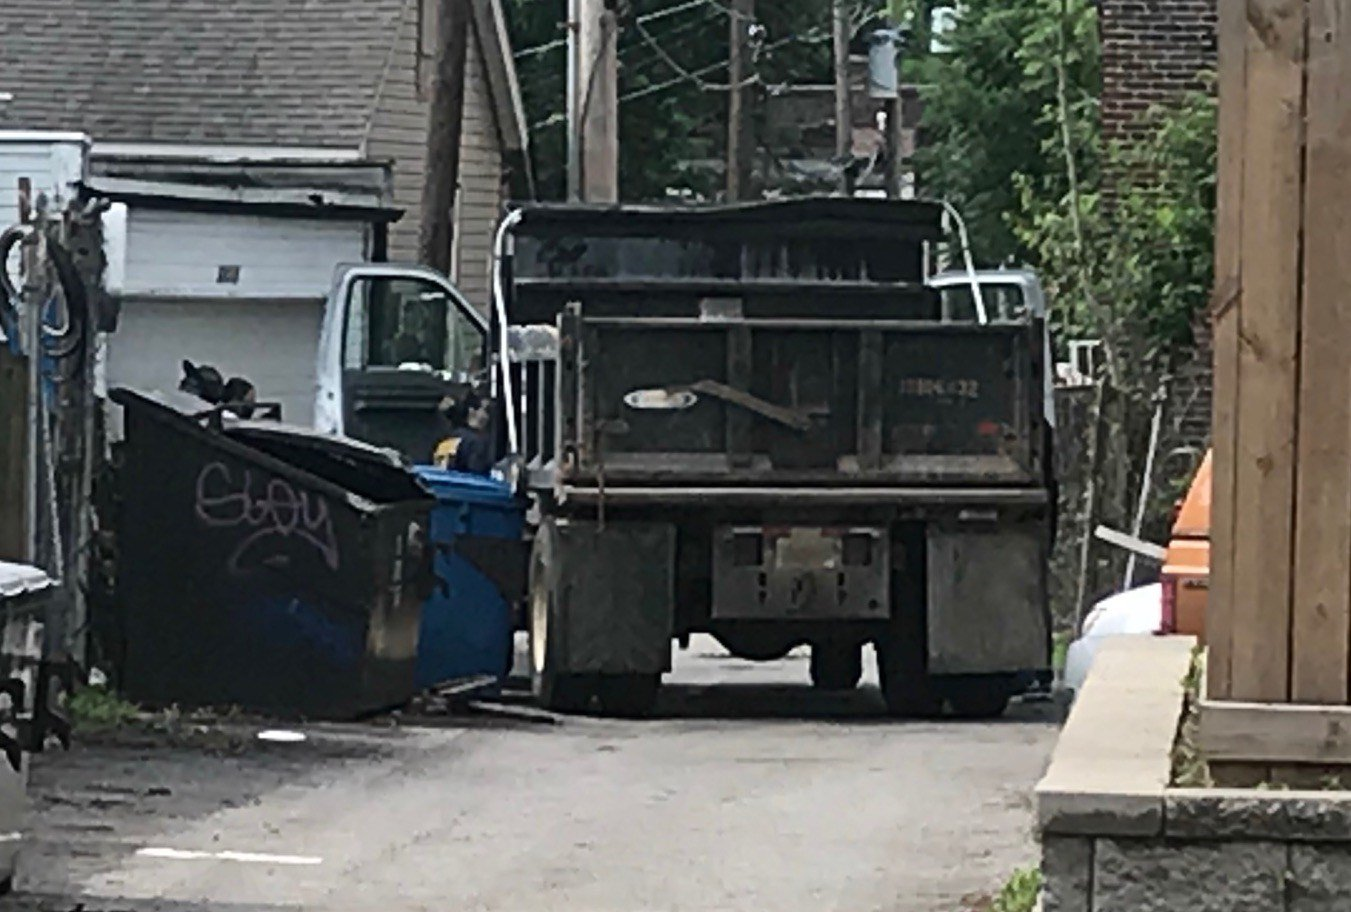 A dump truck stolen in Potosi was abandoned in St. Louis after it was chased by police into Illinois and back into Missouri, going the wrong way, on the Eads Bridge. The suspected truck thief was arrested several blocks away.